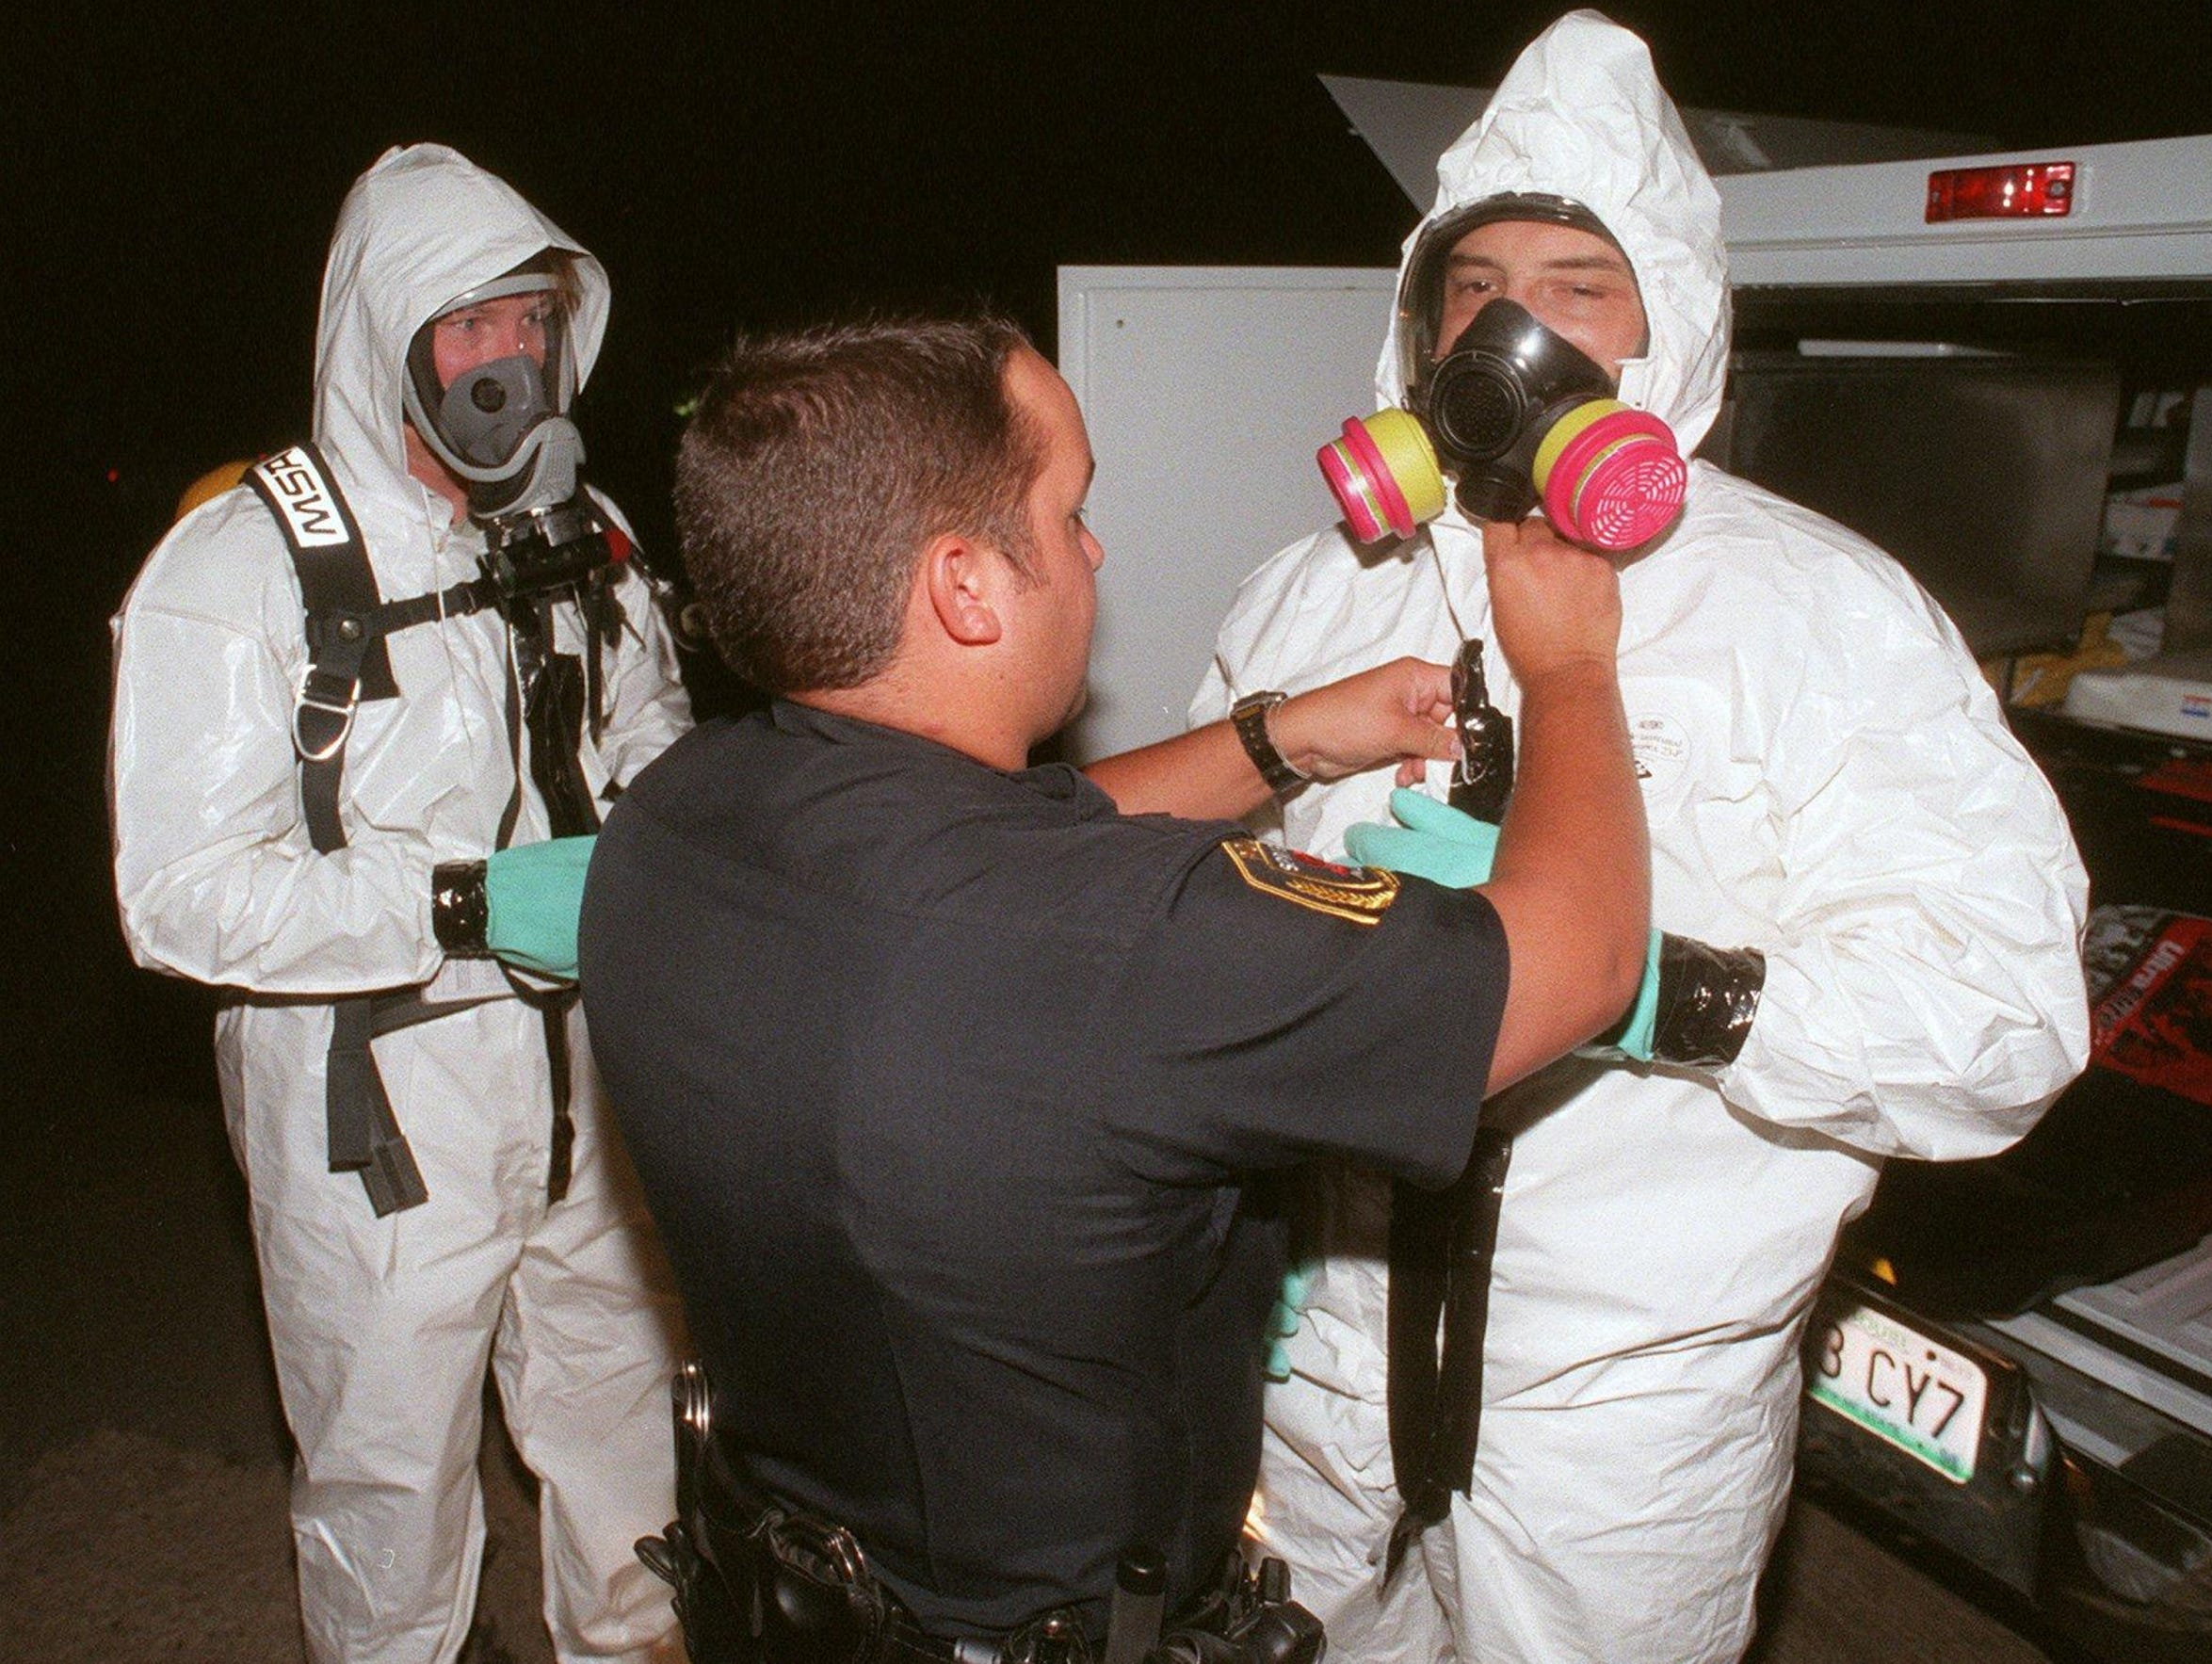 In this 1998 photo, Drug Enforcement Administration